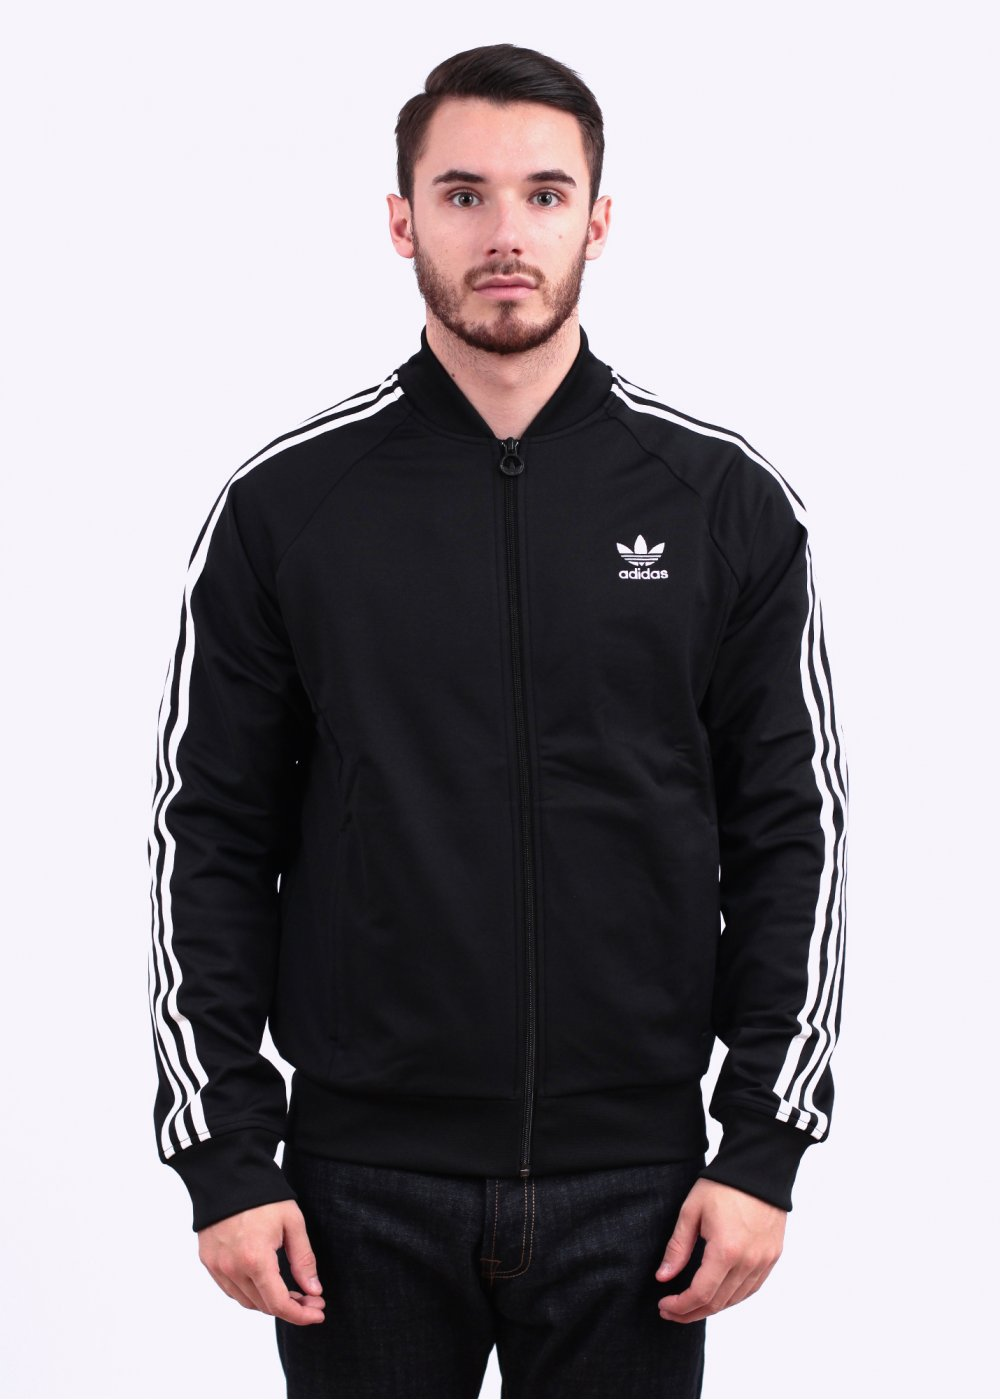 b867e85952d9 adidas Originals Superstar Track Top - Black